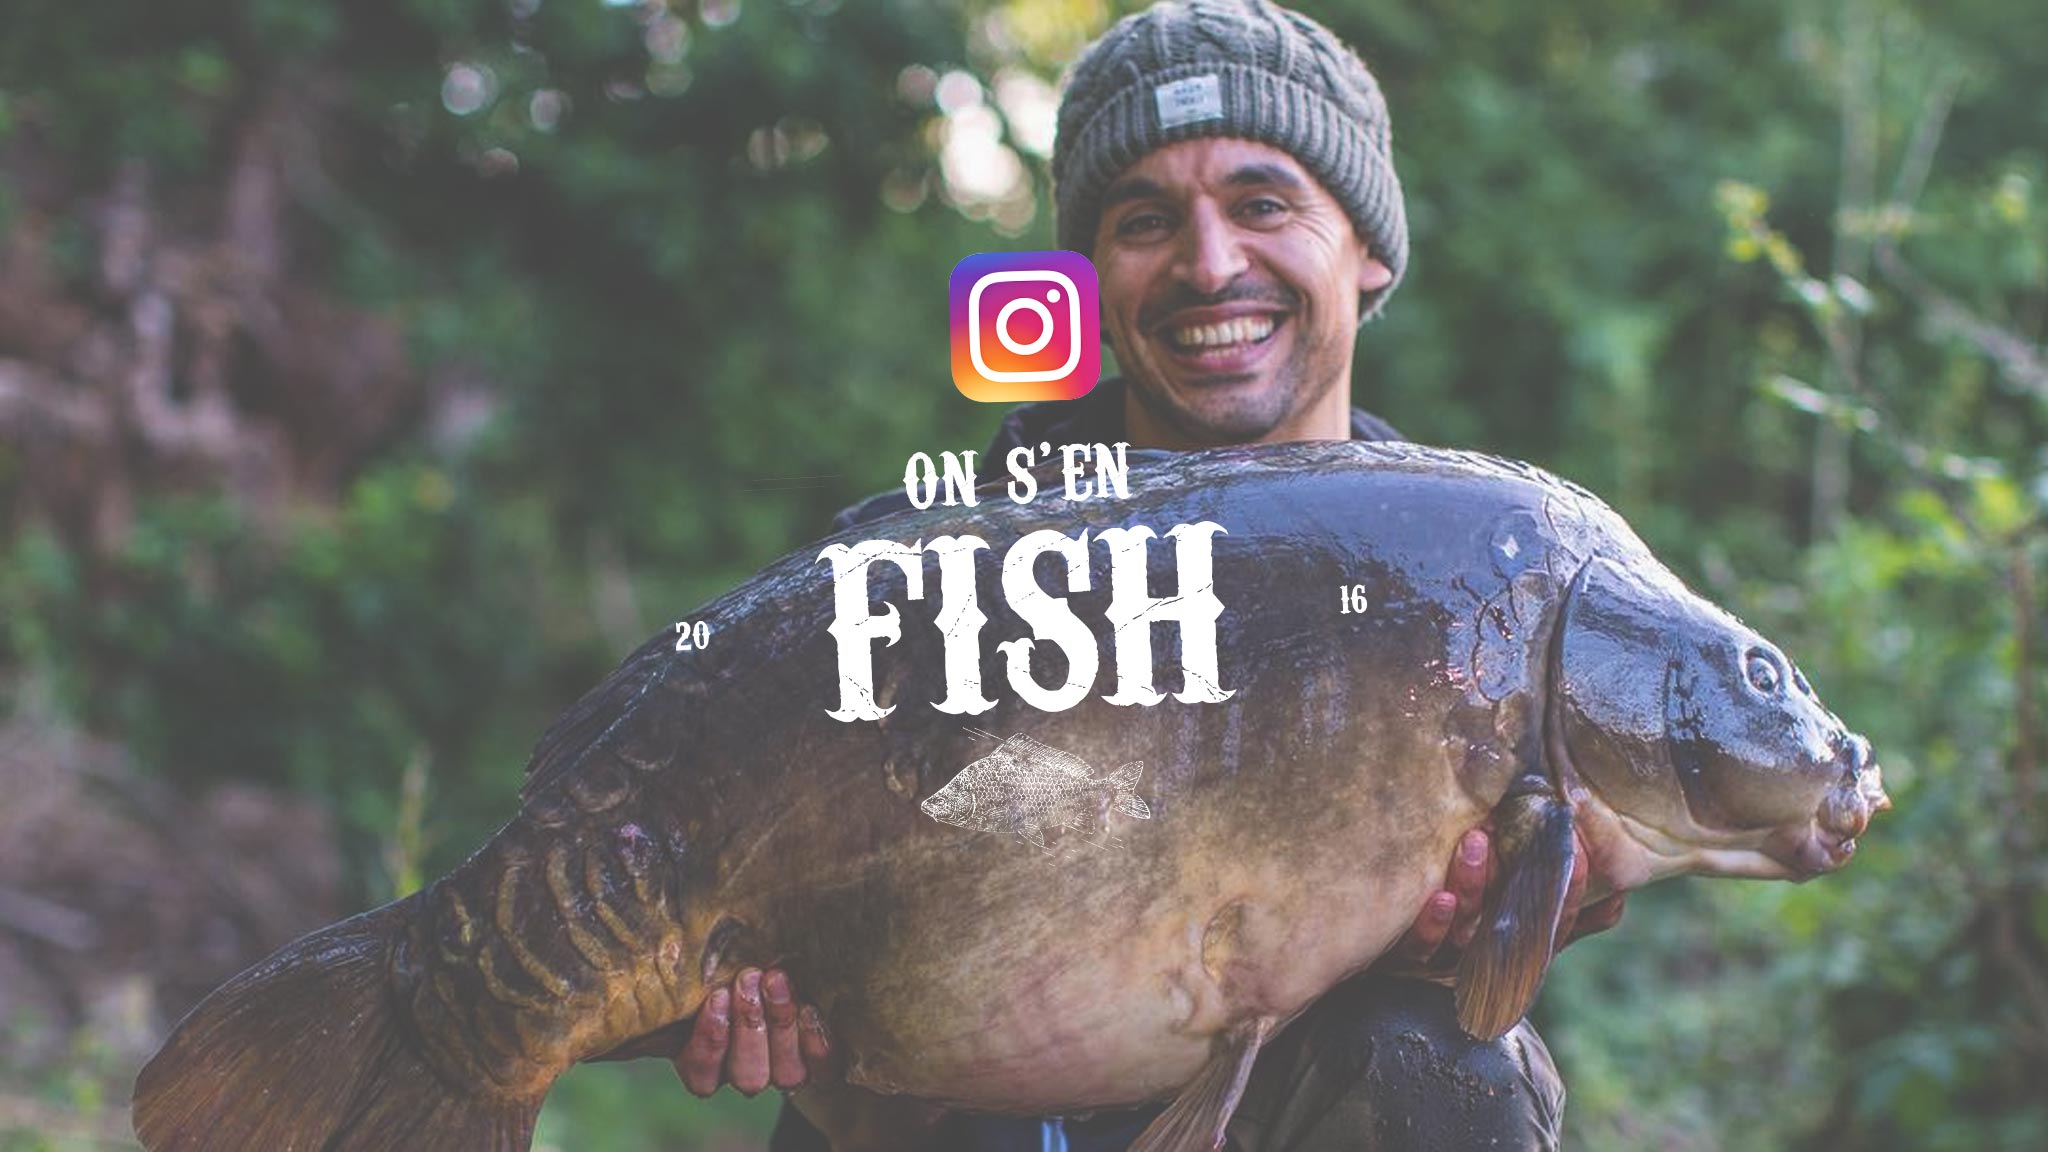 on-s-en-fish-header-carpstagram-18